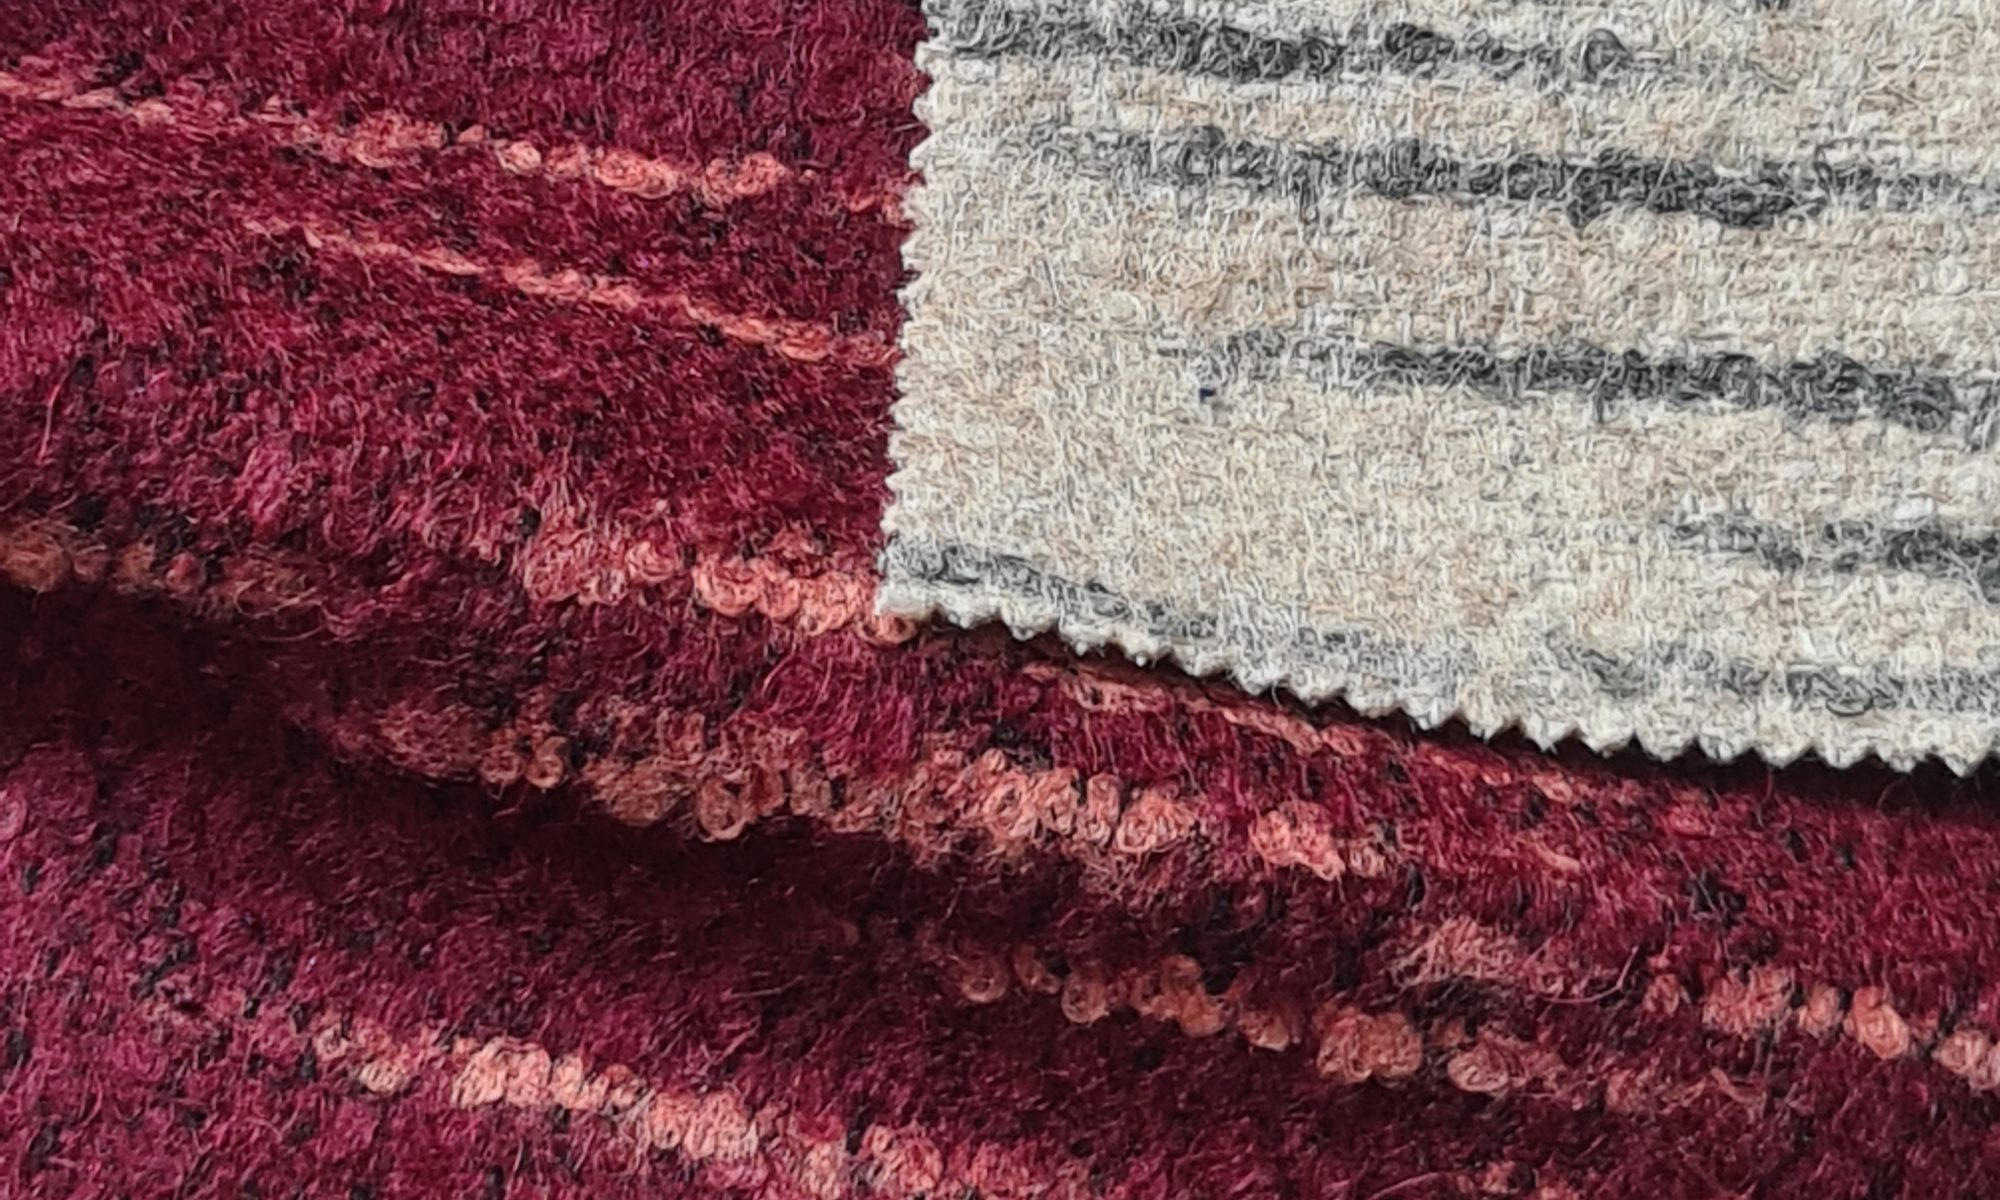 7578 chanel coat fabric WIDTH cm150 WEIGHT gr550 - gr366 square meter - COMPOSITION 45 wool 15 alpaca 10 mohair 10 polyammide 10 cotton 10 polyester - White 200mts – red 550mts